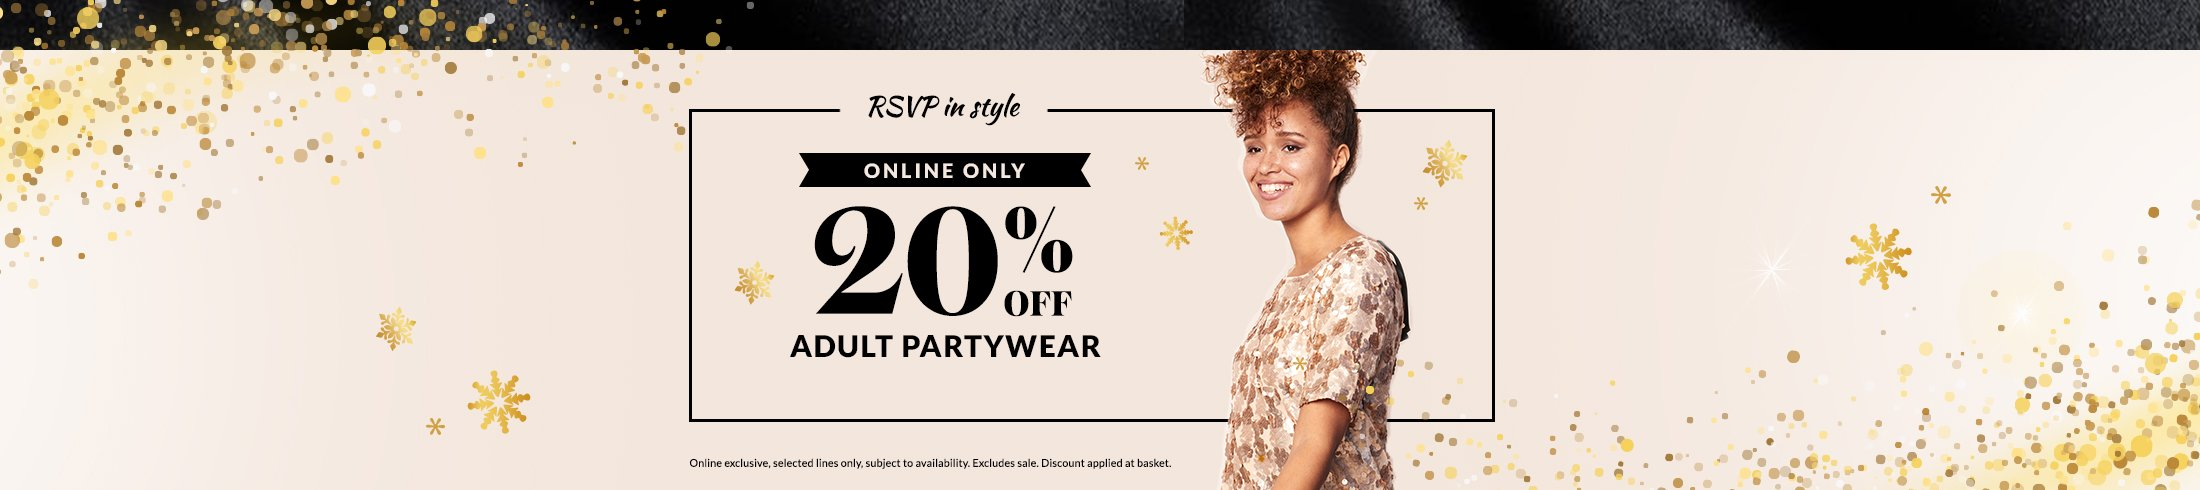 Time to shine! Shop 20% off men's and women's partywear